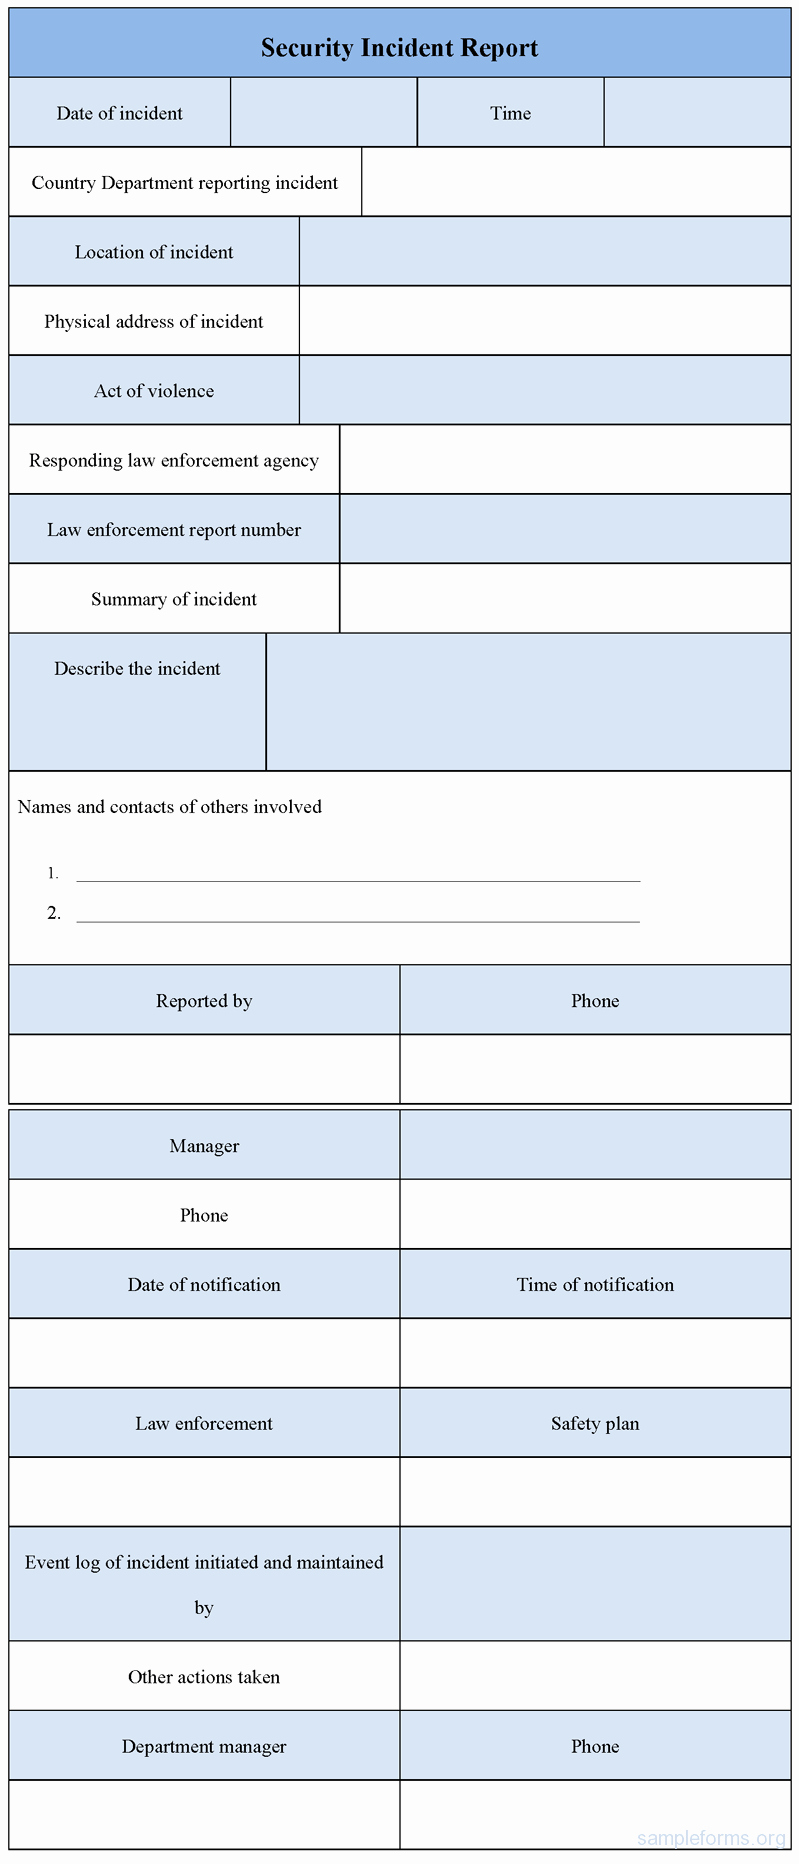 Security Incident Report Template Word Lovely Security Incident Report form Sample forms